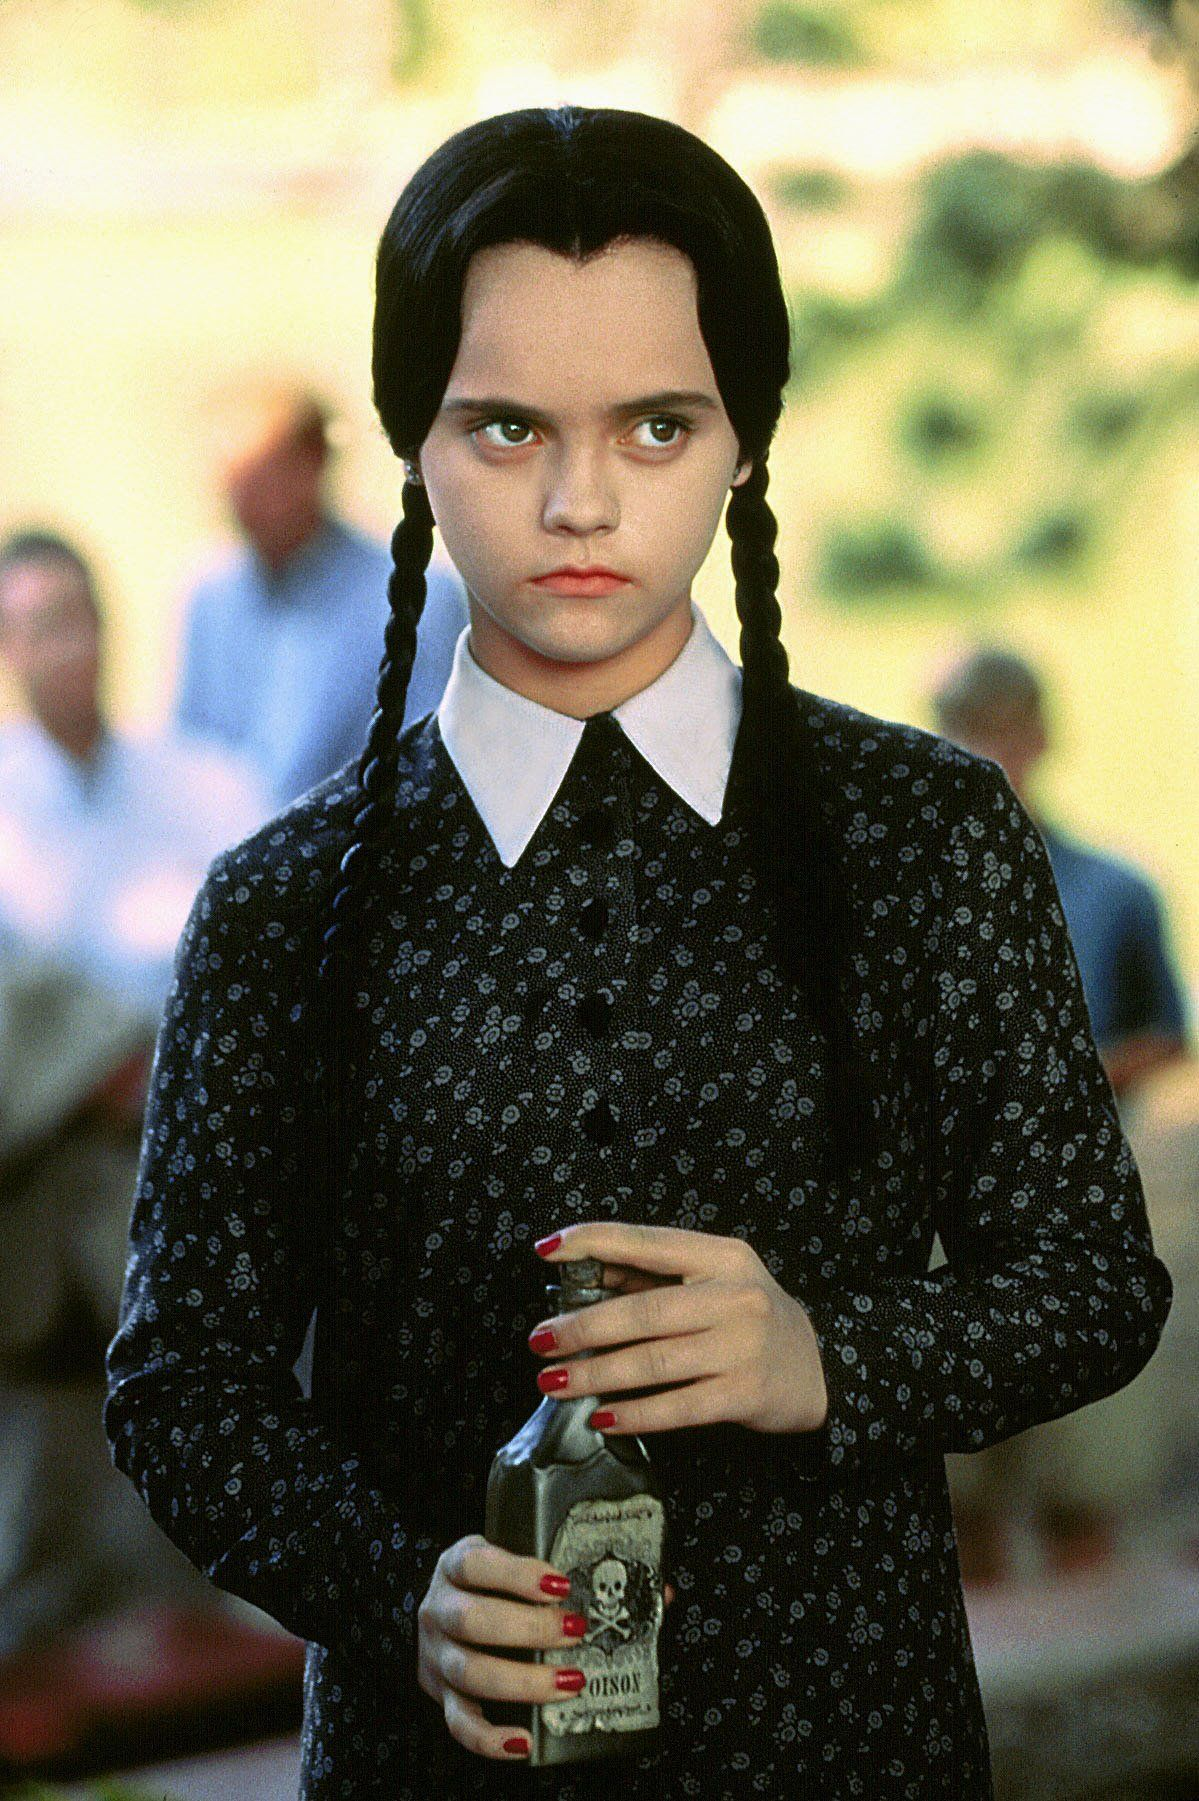 27 halloween costumes inspired by movie and tv characters - Tv Characters Halloween Costumes